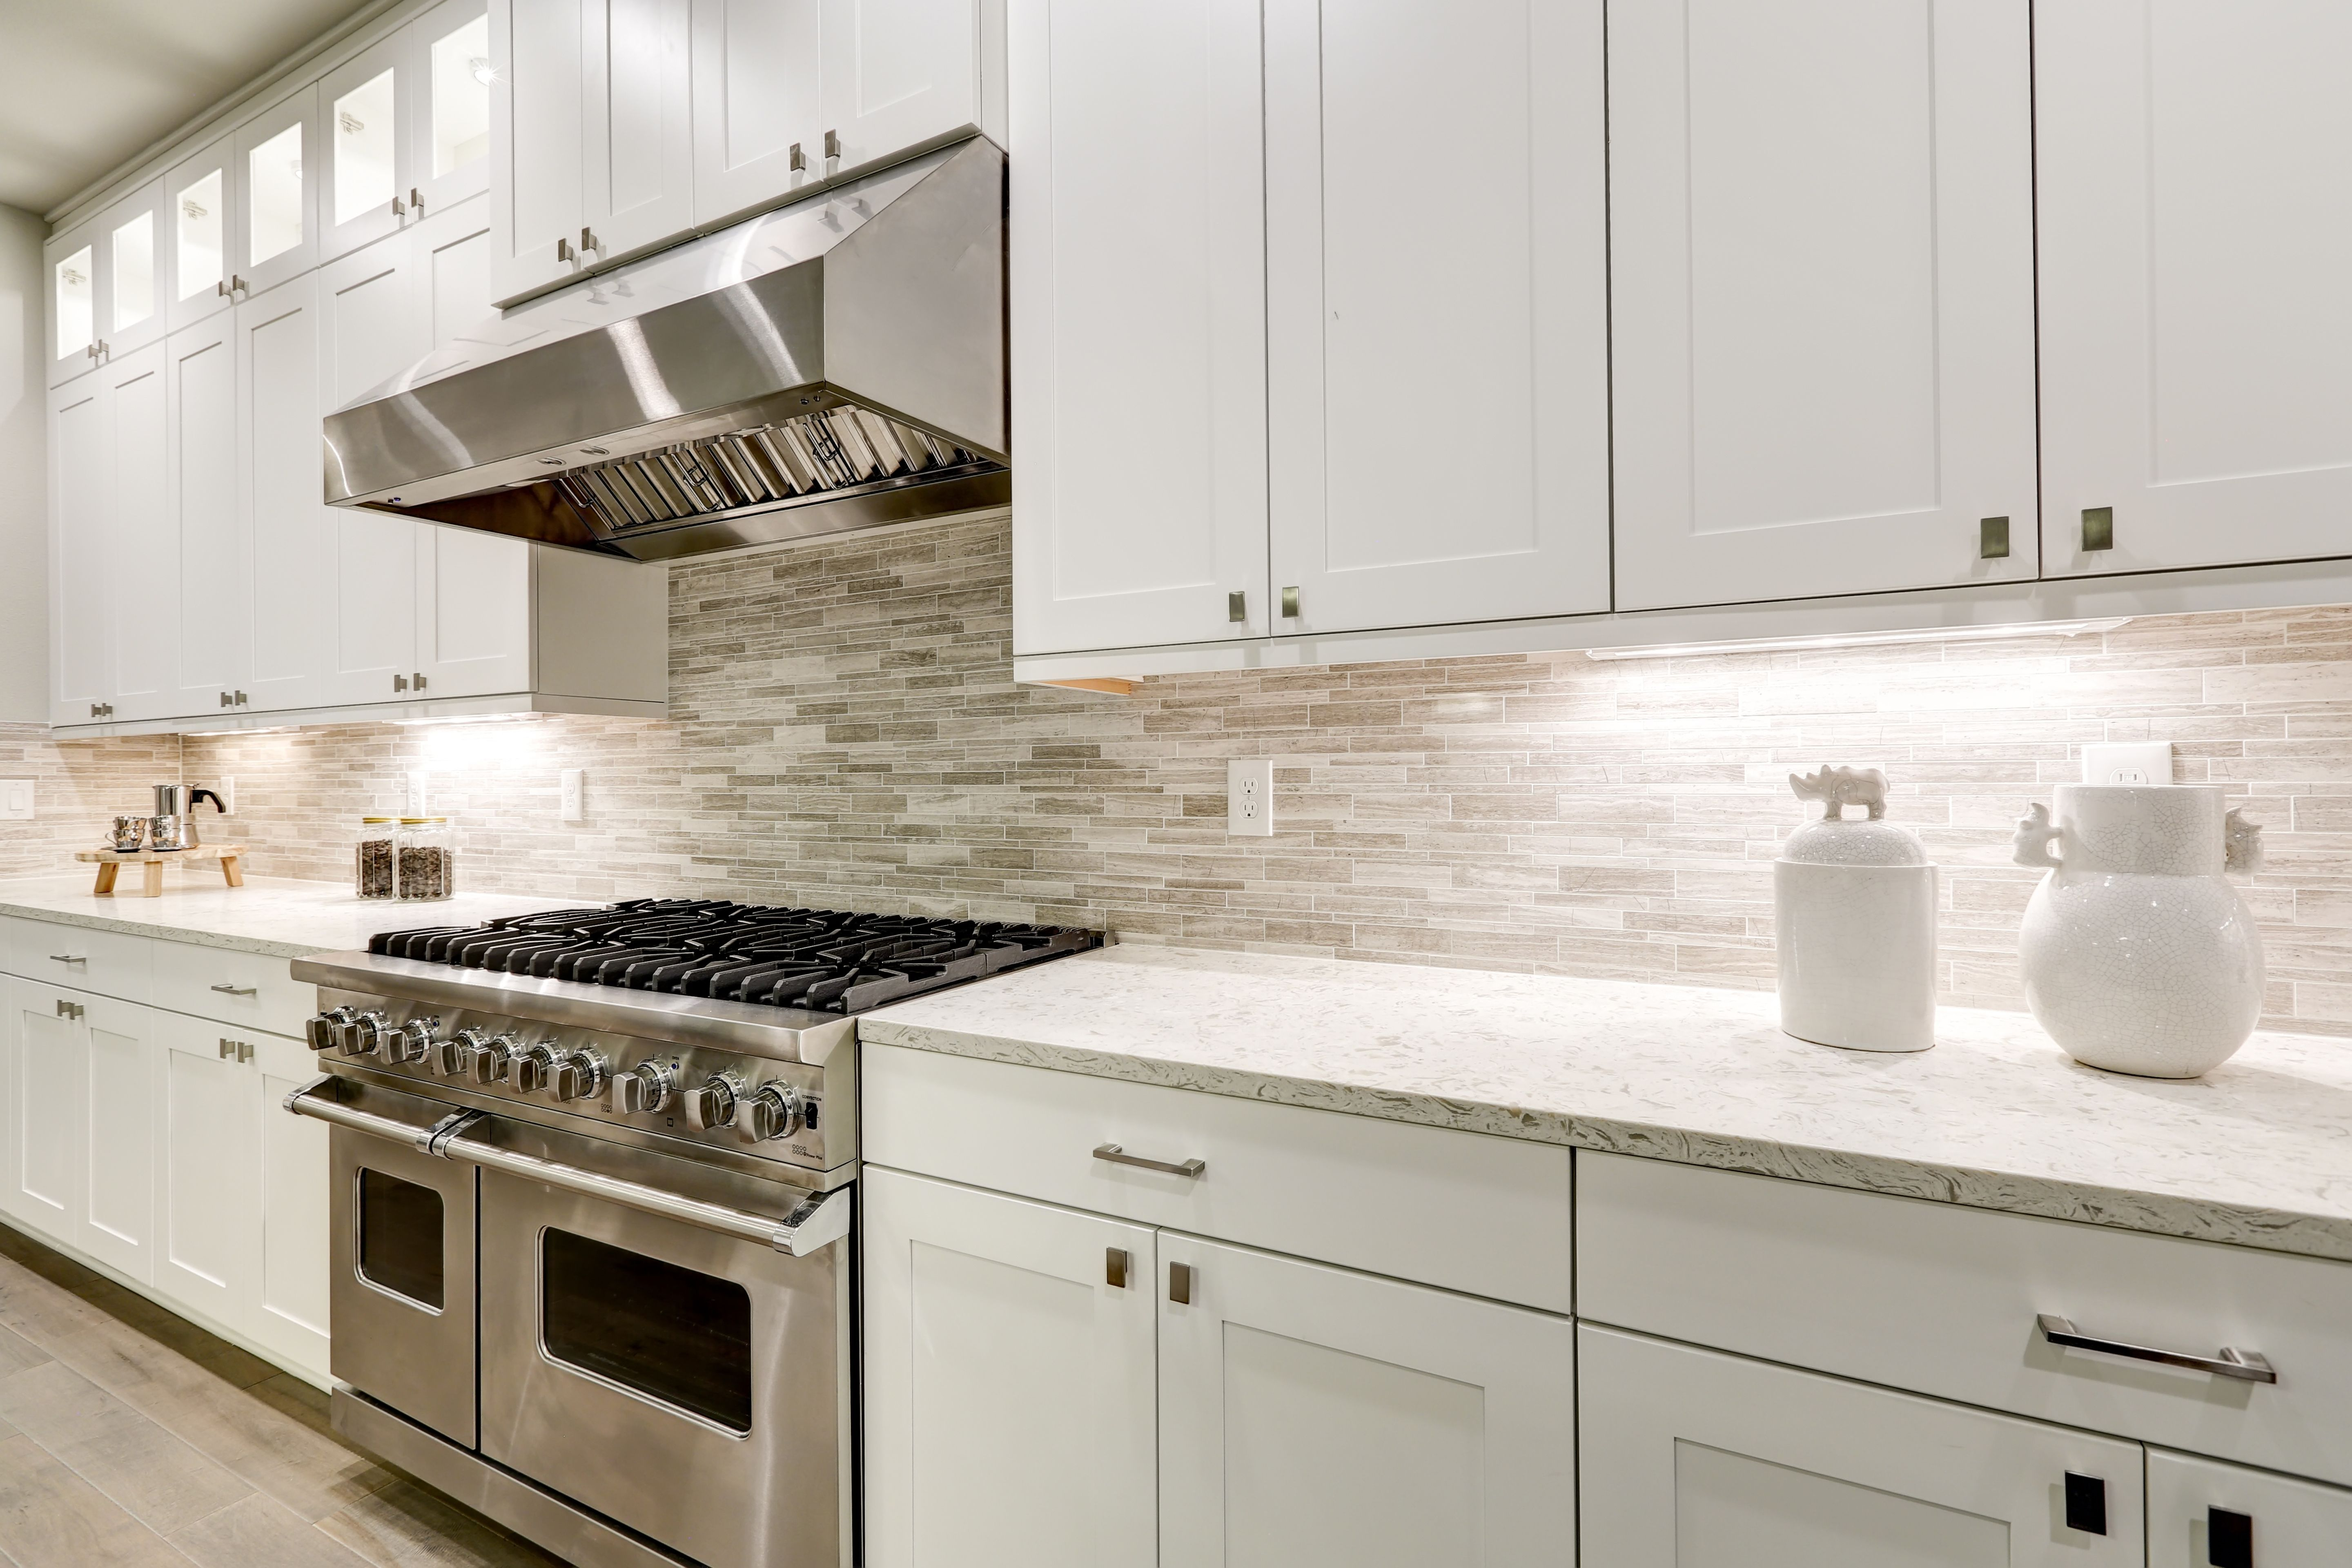 Types Of Kitchen Cabinets 101 Guide All You Need To Know Kitchen Cabinet Sizes Custom Kitchen Cabinets Cost Of Kitchen Cabinets